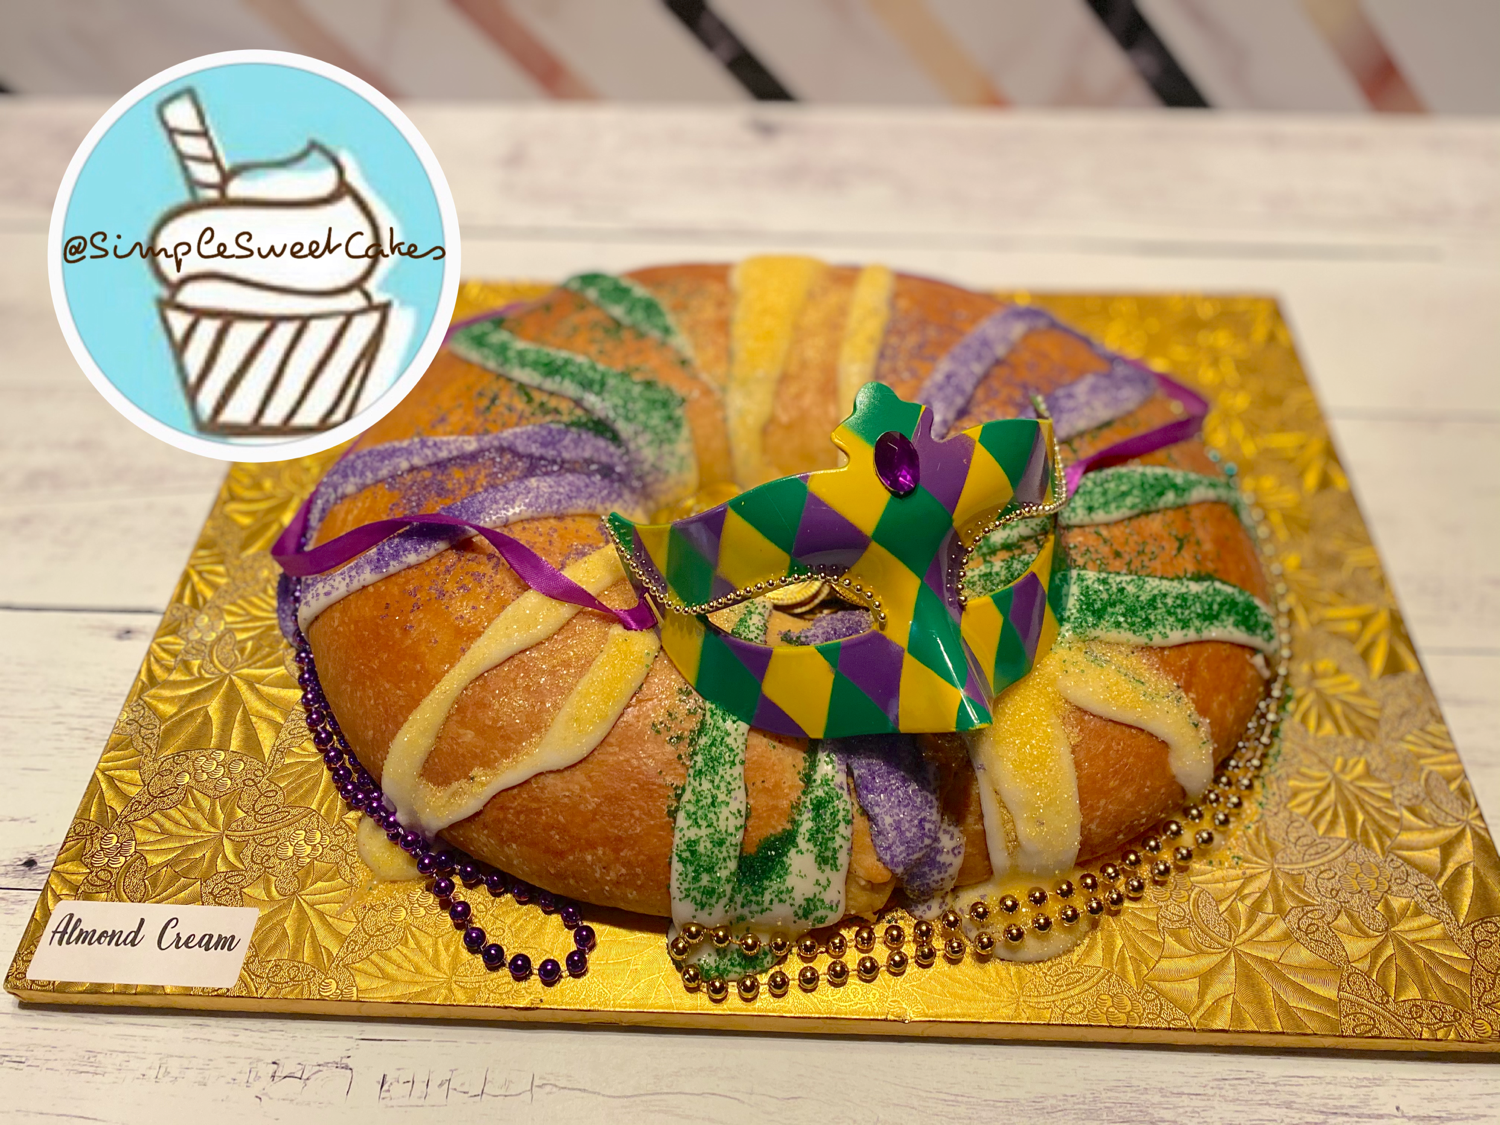 Almond Cream - King Cake